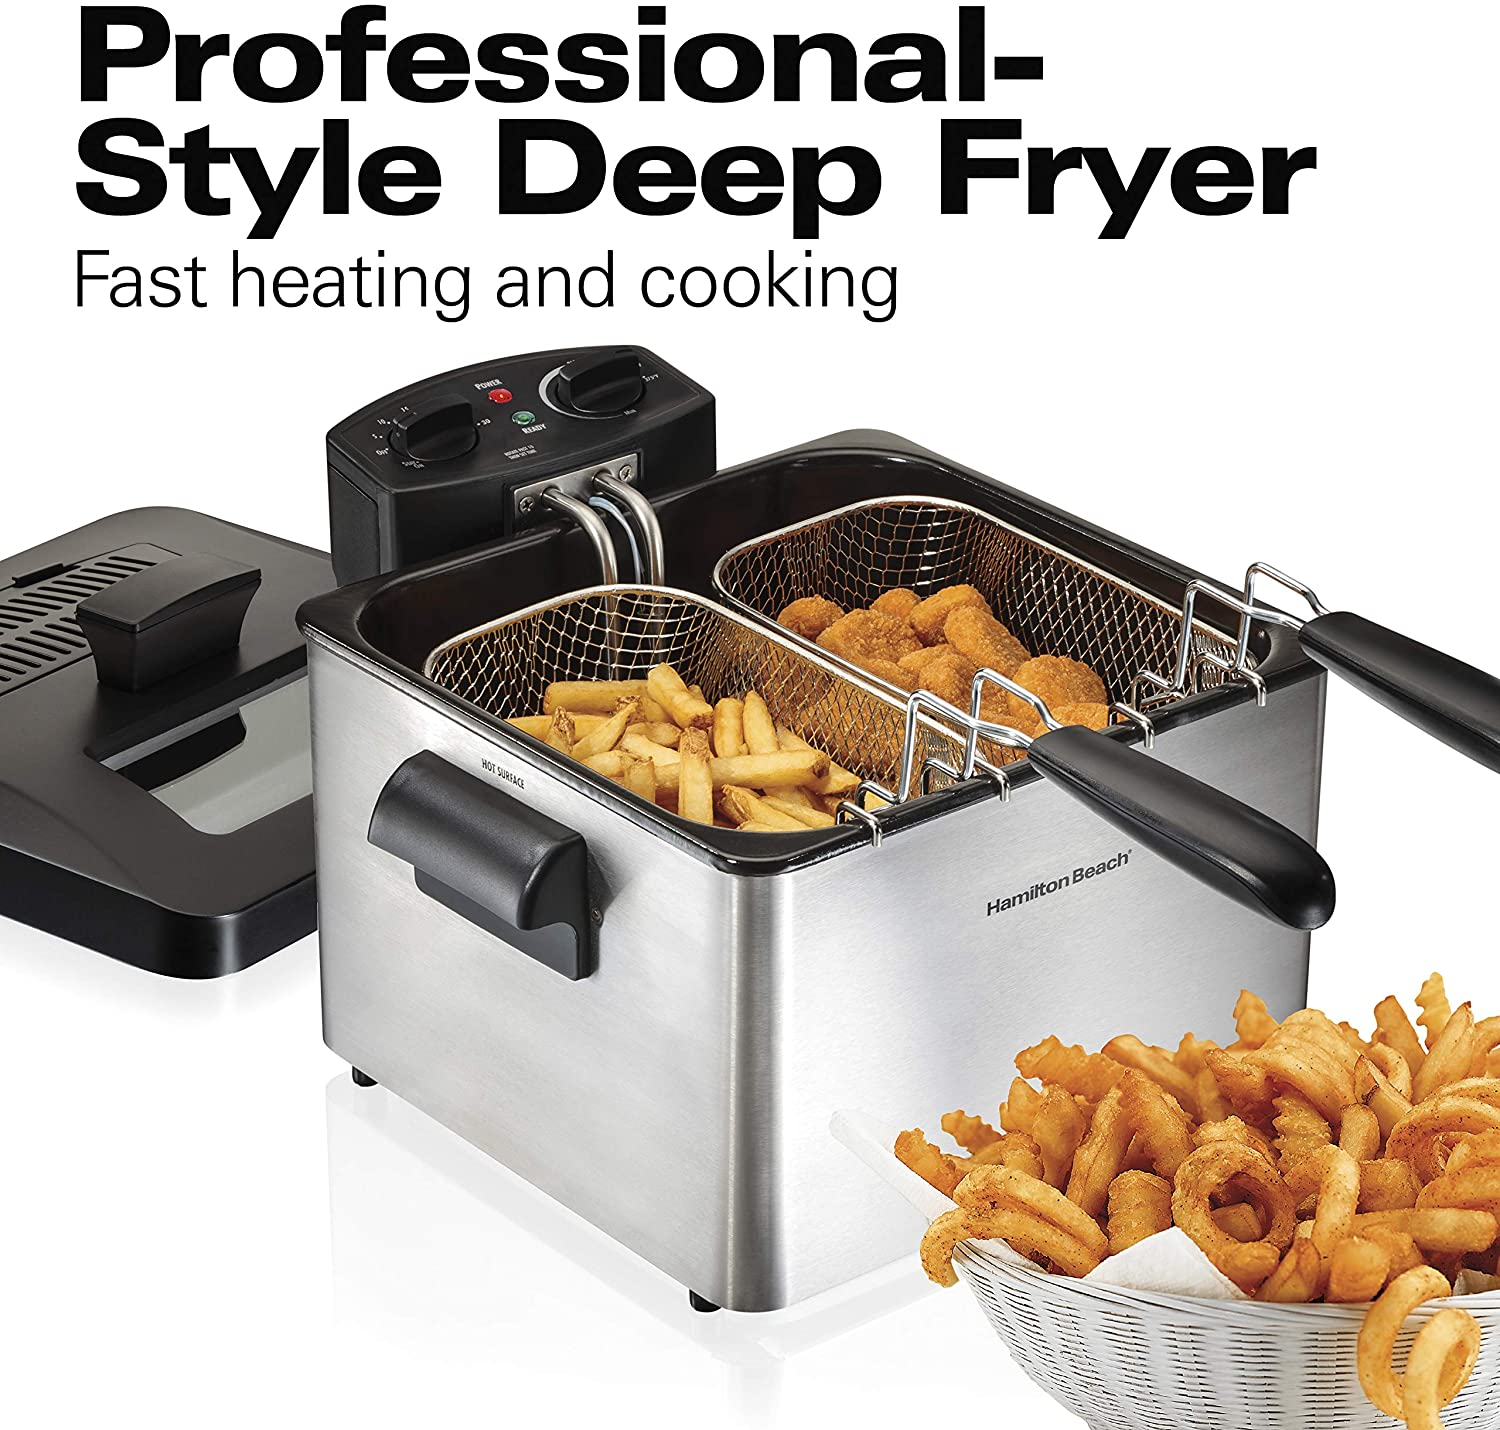 Deep Fryer with 2 Frying Baskets, 19 Cups / 4.5 Liters Oil Capacity